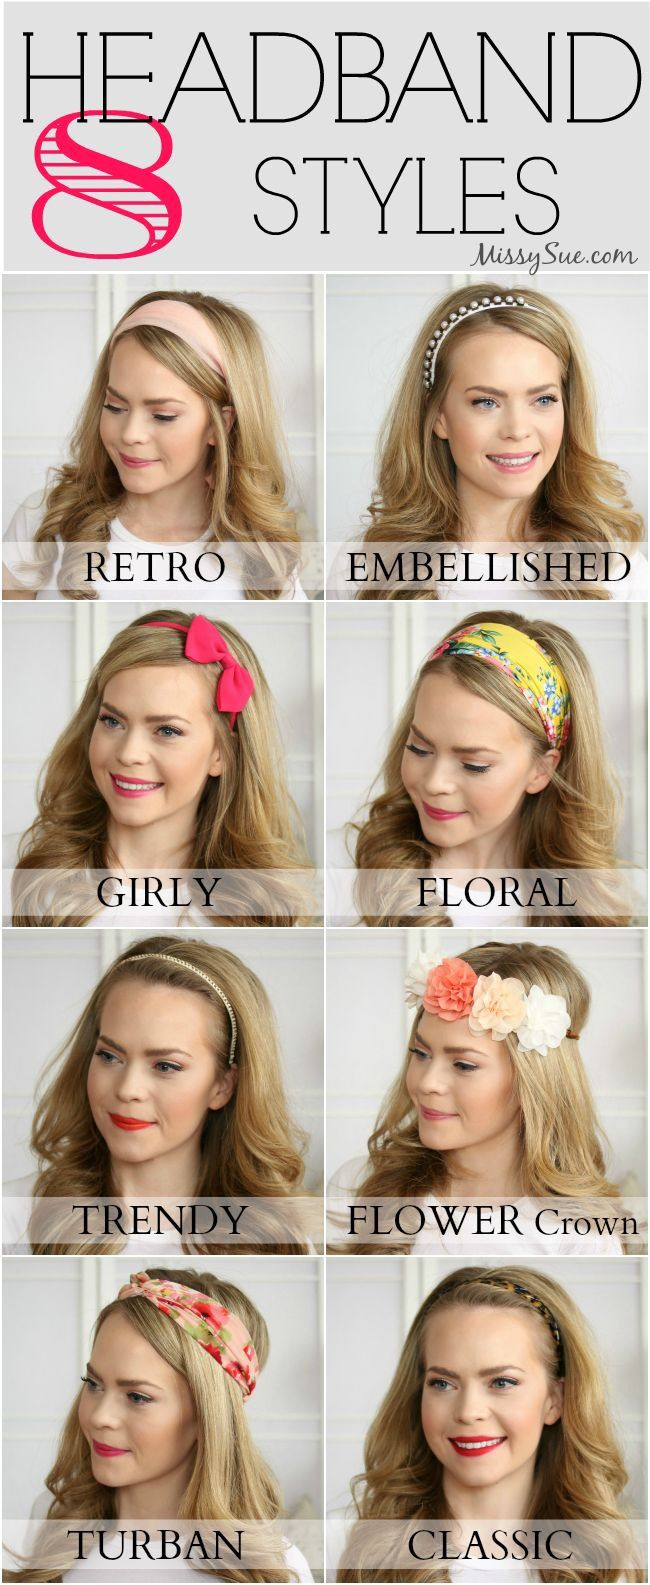 Ways To Wear Headbands Headband Hairstyles Long Hair Styles Headband Styles